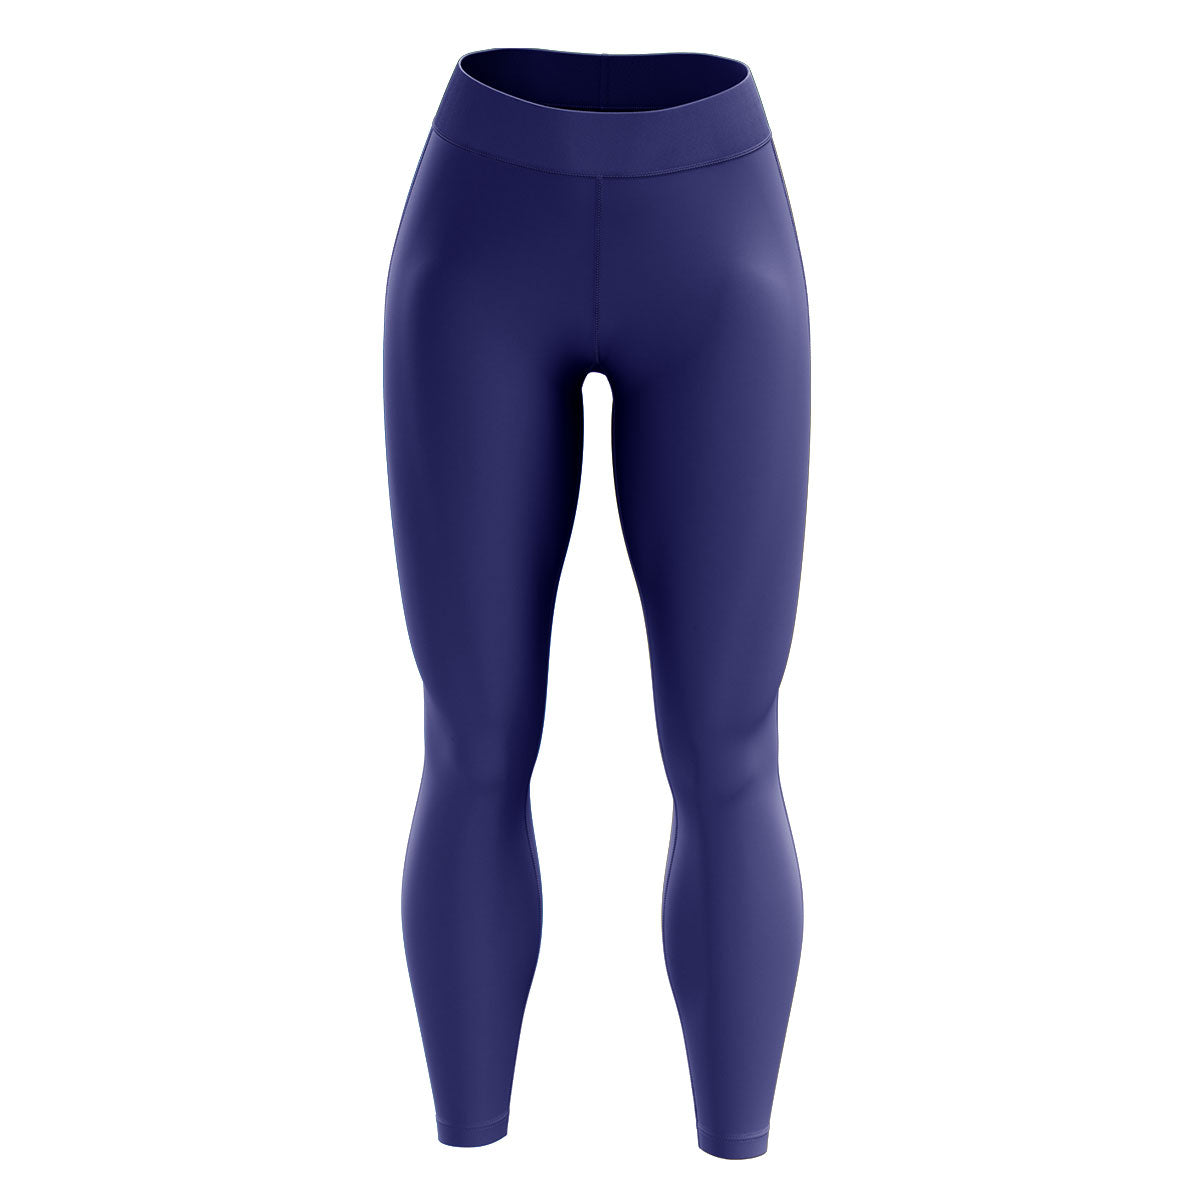 Dark Blue High Waisted Yoga Leggings